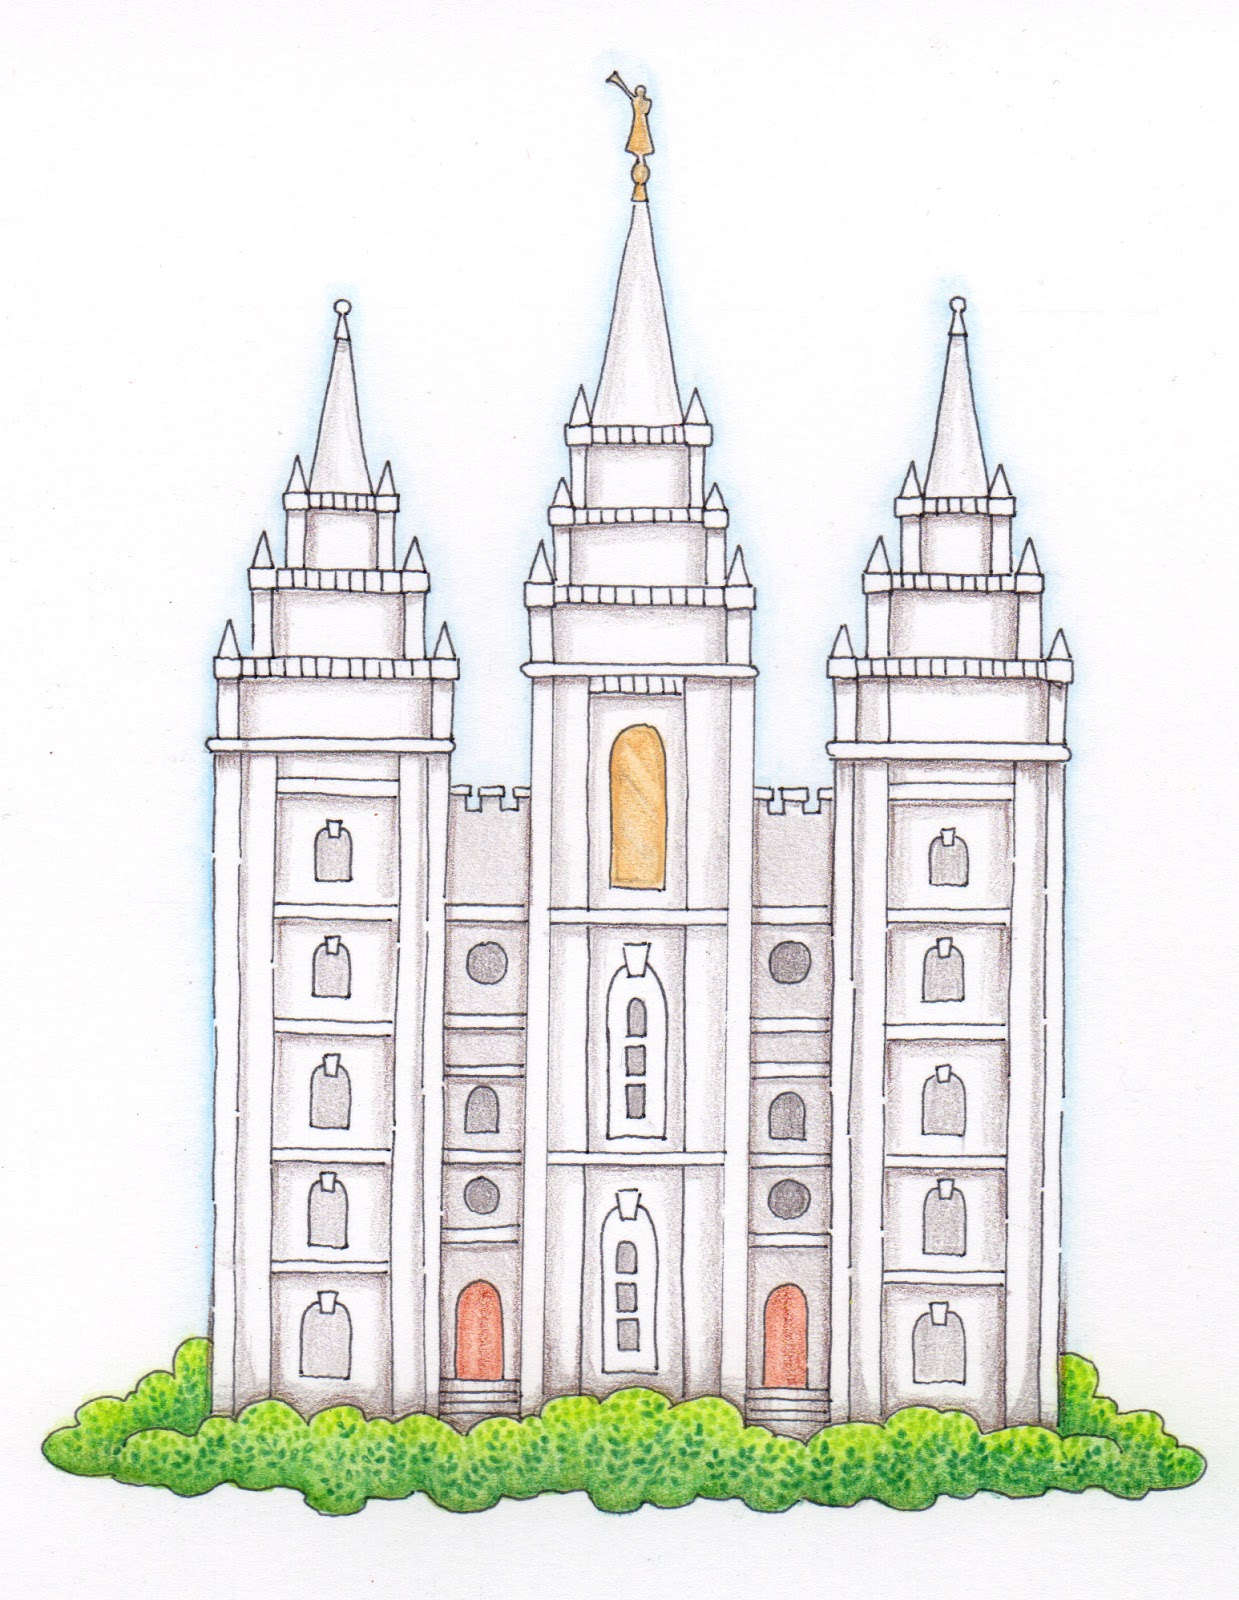 3273 Lds free clipart.